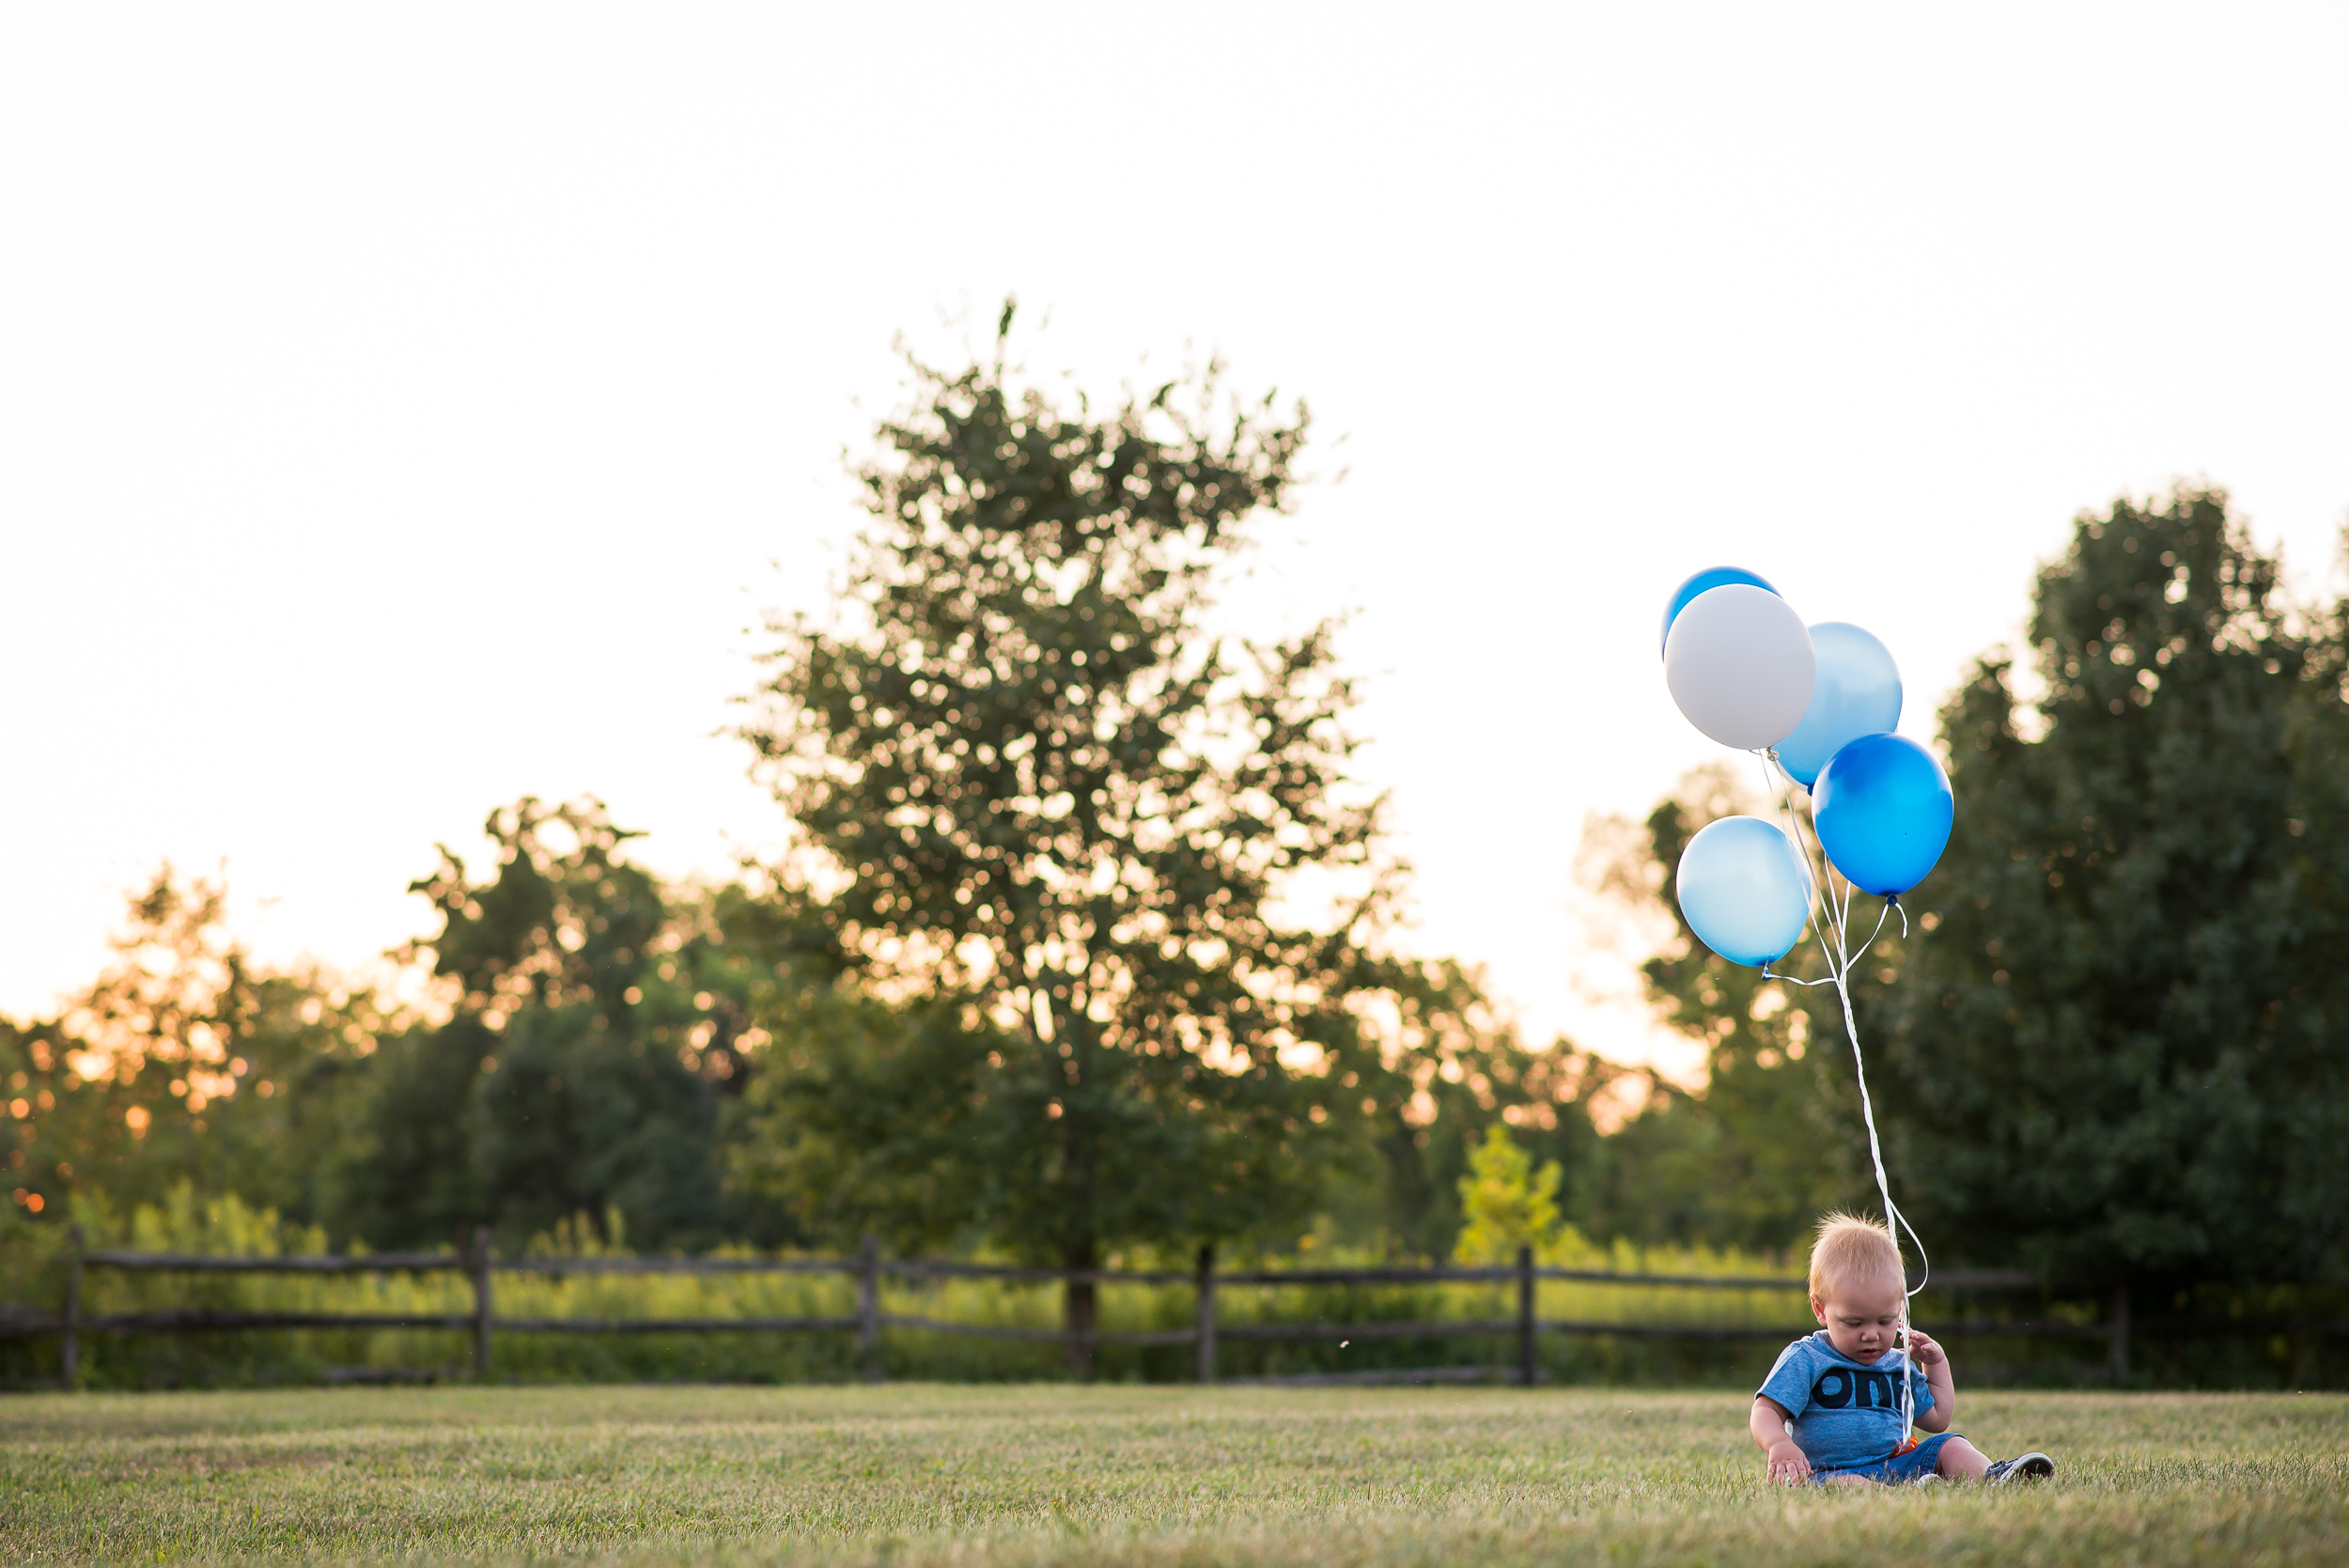 20160904 - Masons First Birthday-DSC_4729.jpg